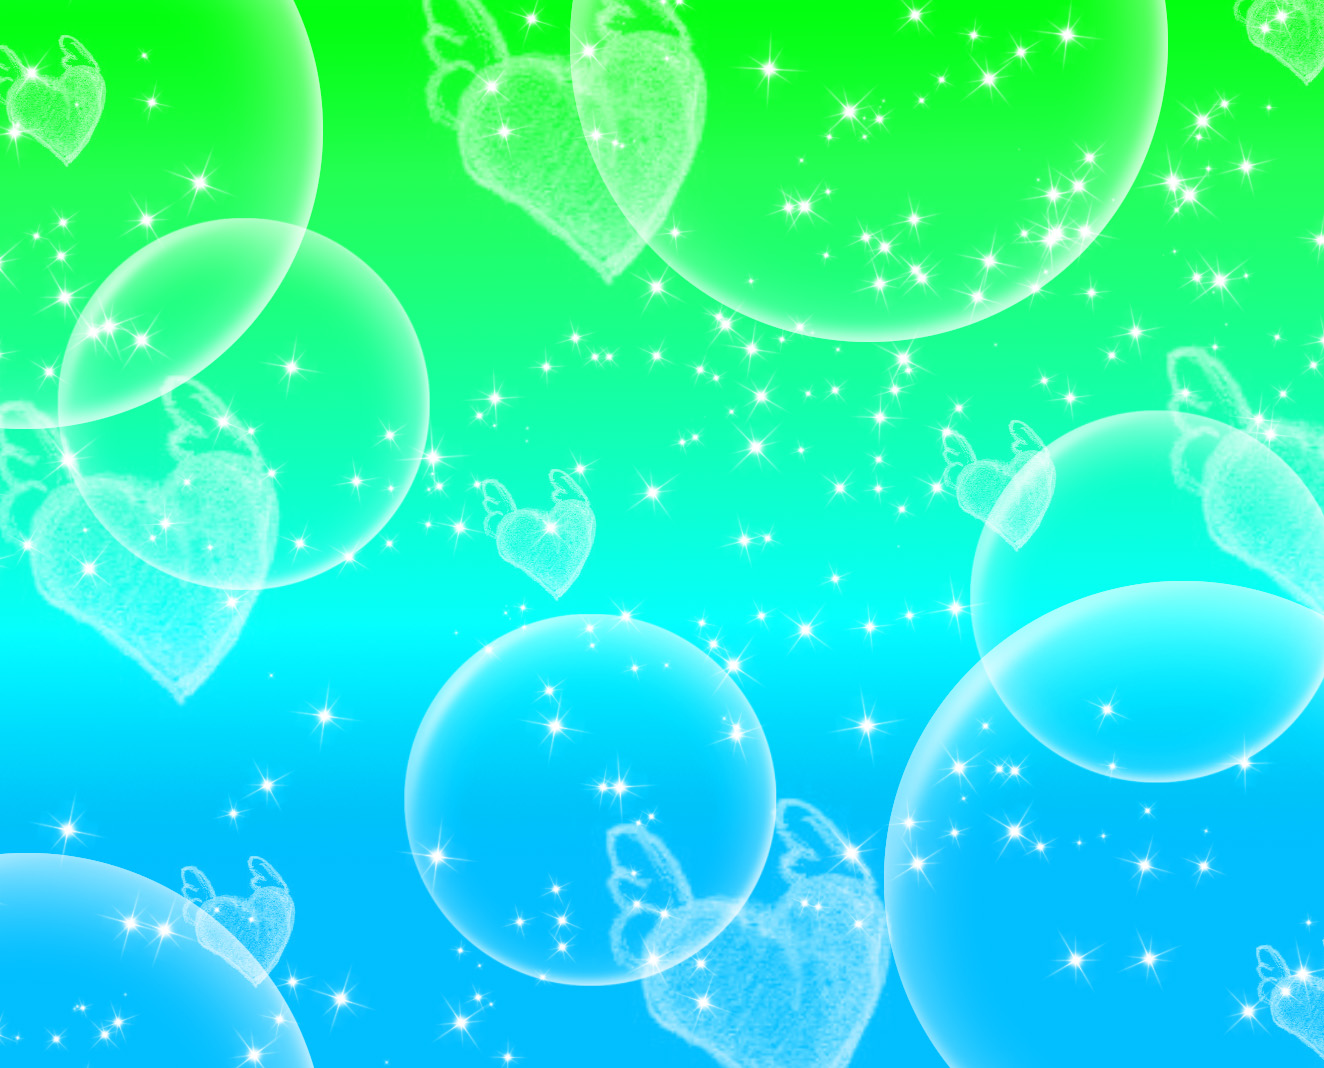 Green Blue Circles PPT Backgrounds